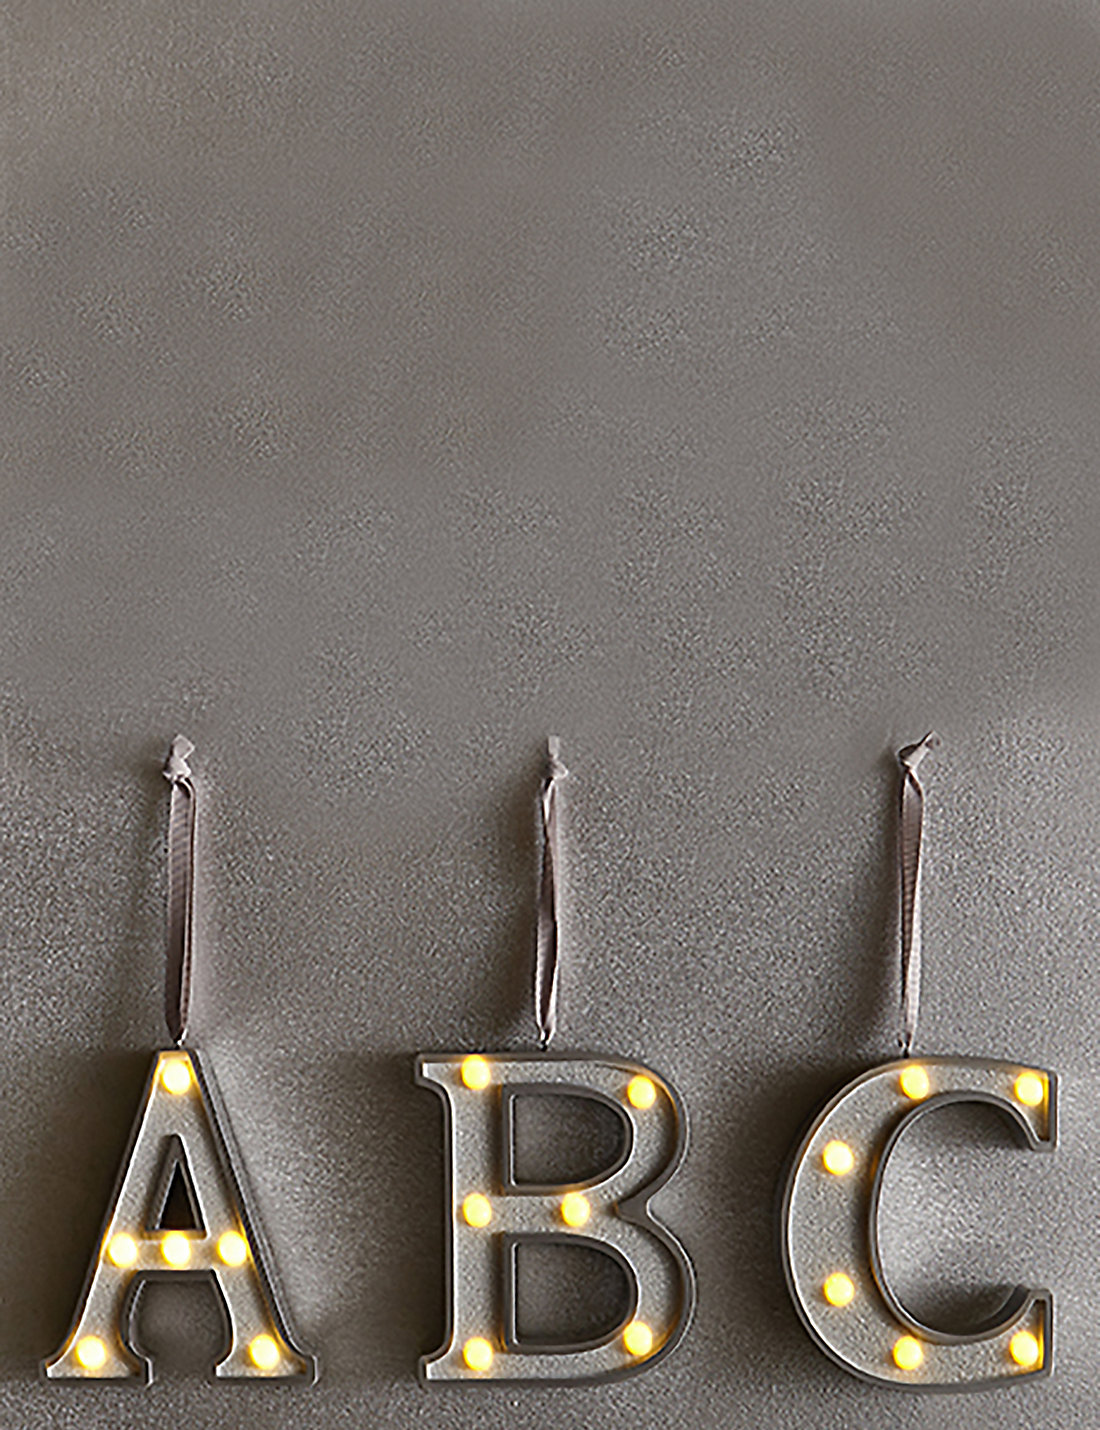 A-Z Light-up LED Silver Alphabet Baubles